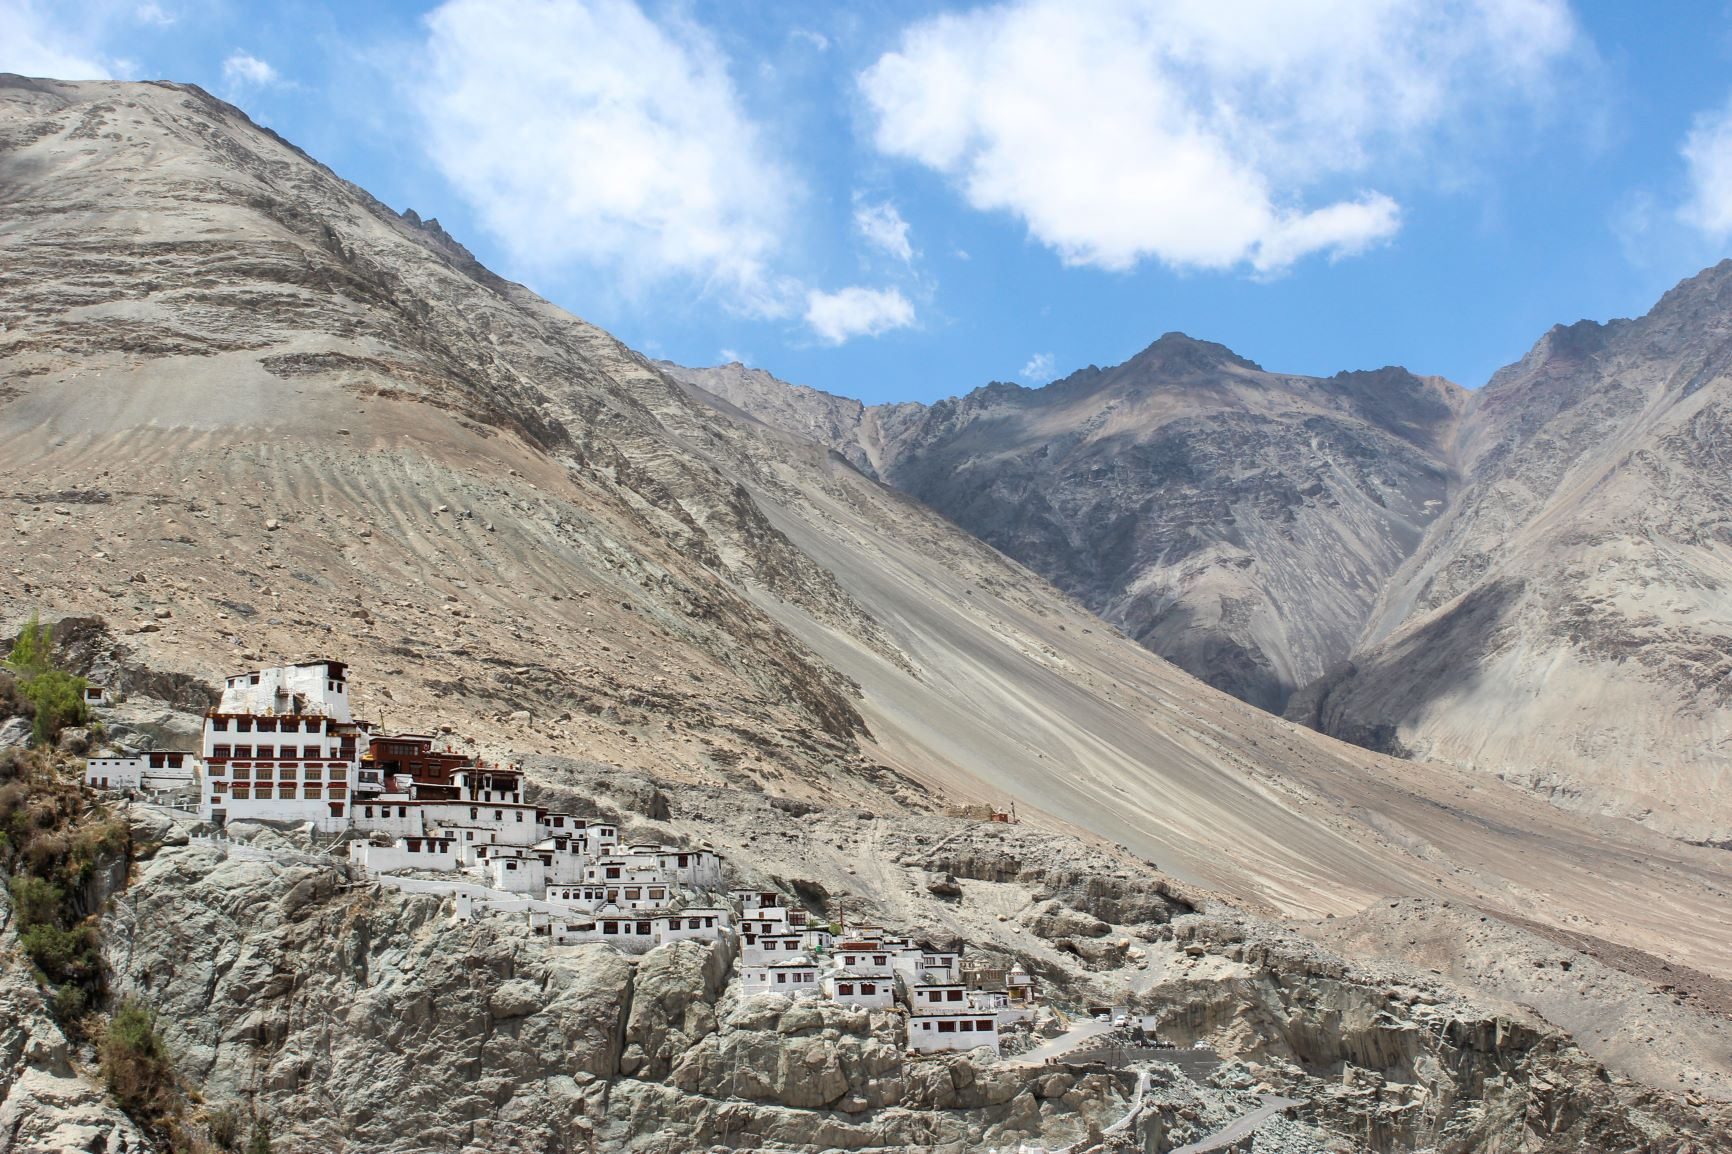 Leh to Turtuk: A Road Trip to Ladakh's Last Village